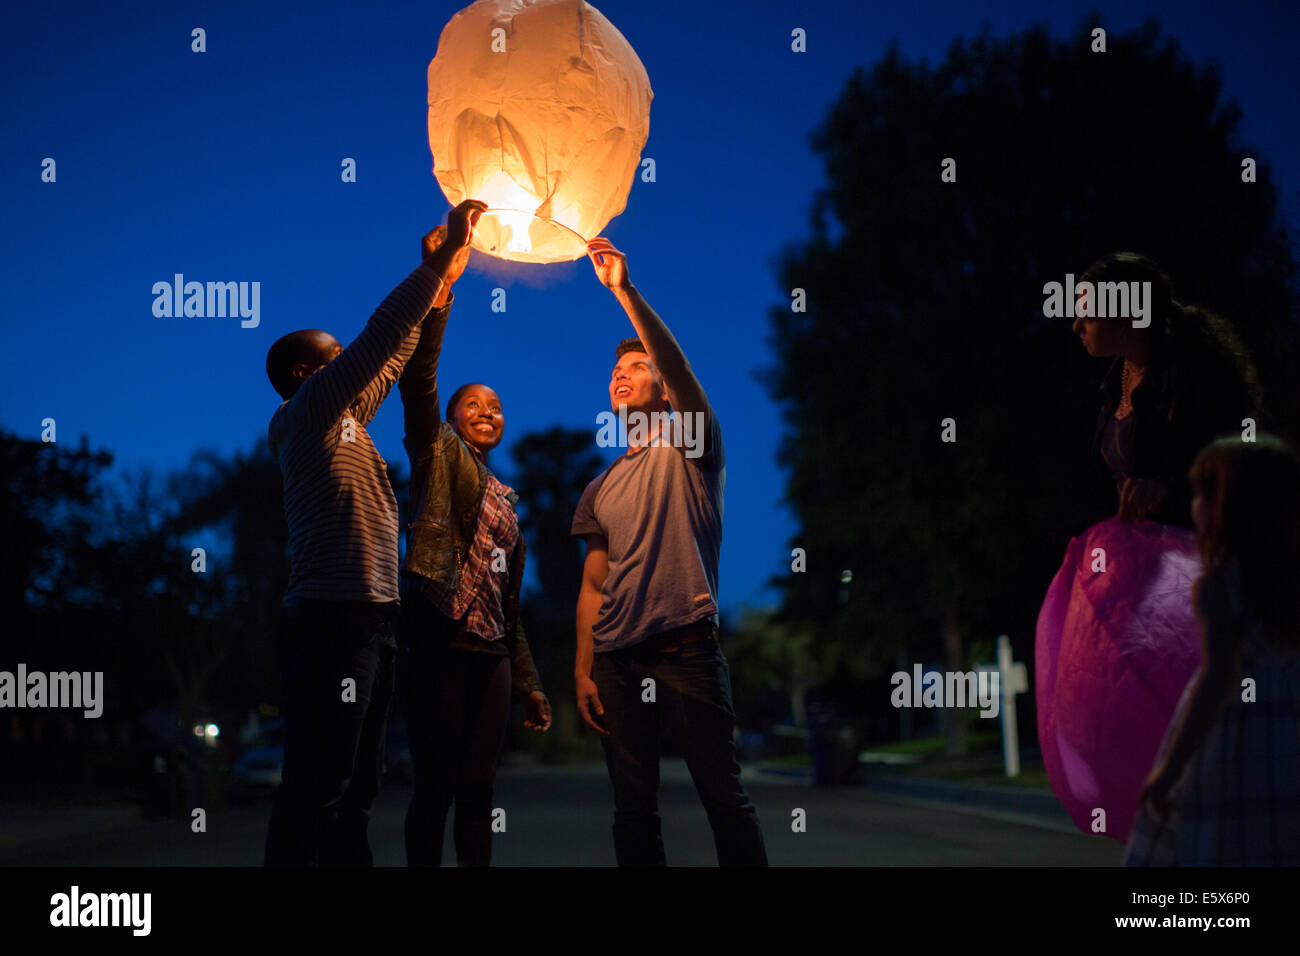 Friends holding up sky lantern to celebrate - Stock Image